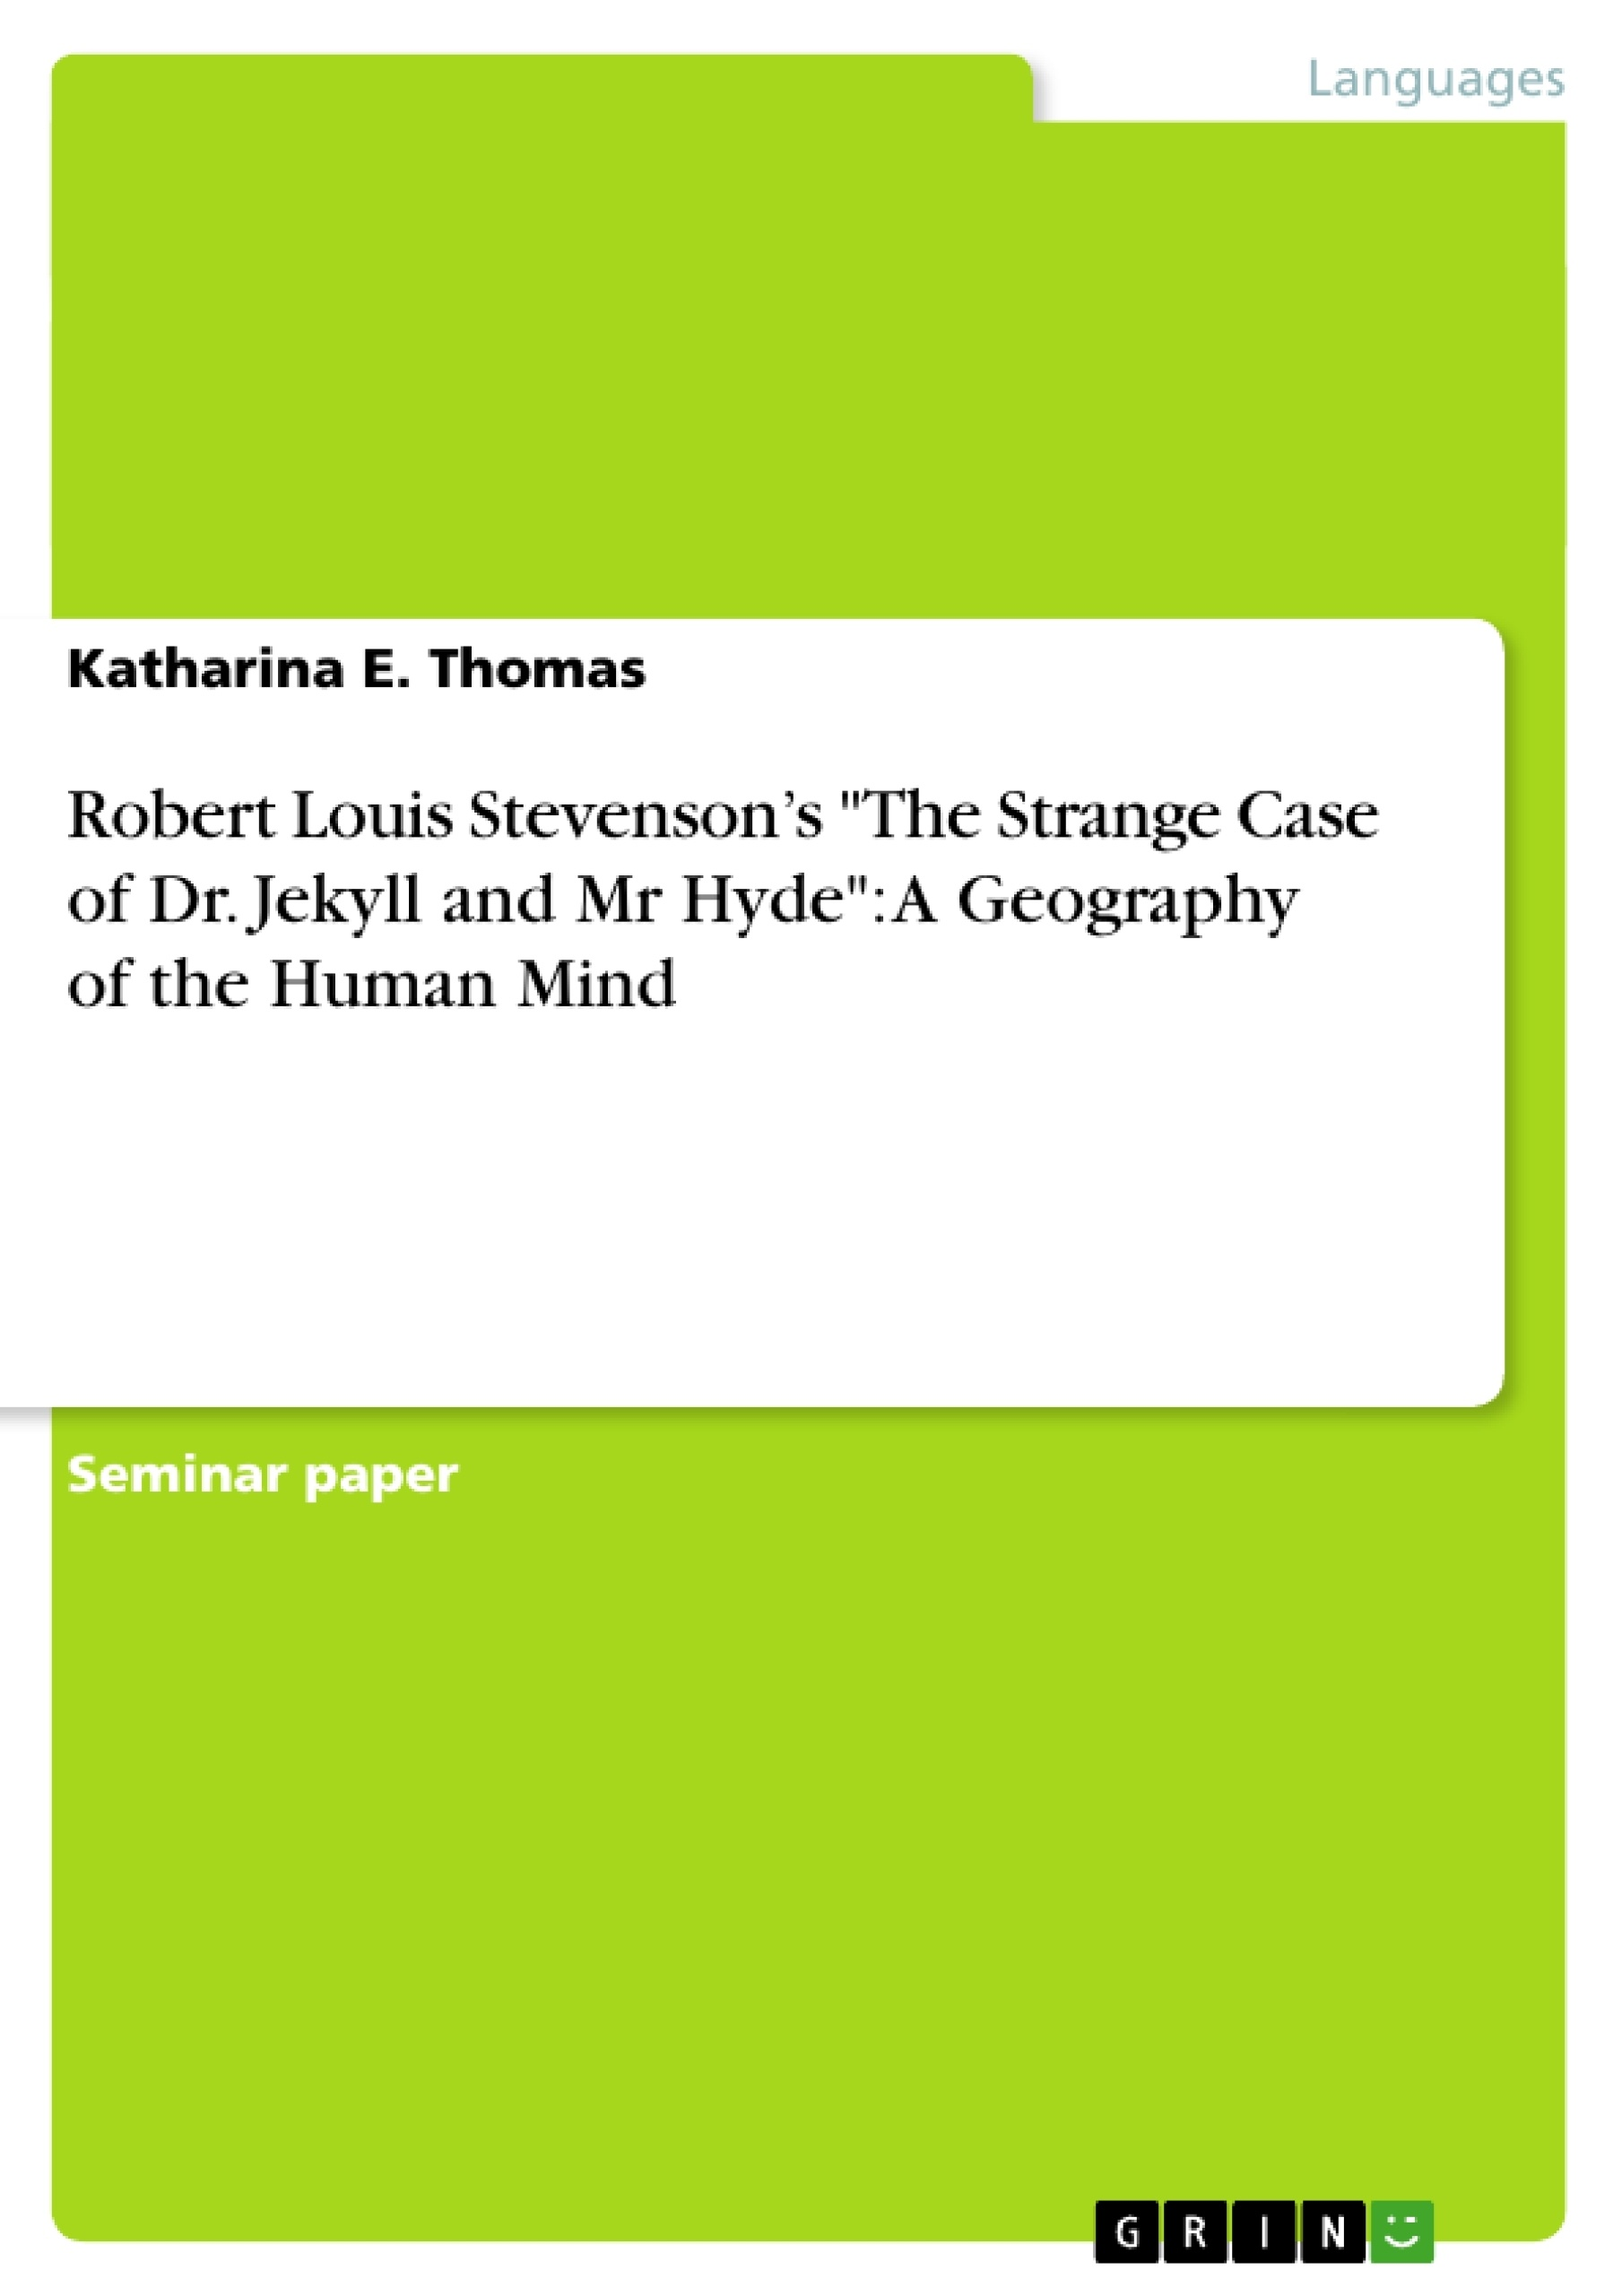 dr jekyll and mr hyde essay topics good topics to do a persuasive  robert louis stevenson s the strange case of dr jekyll and mr robert louis stevenson s